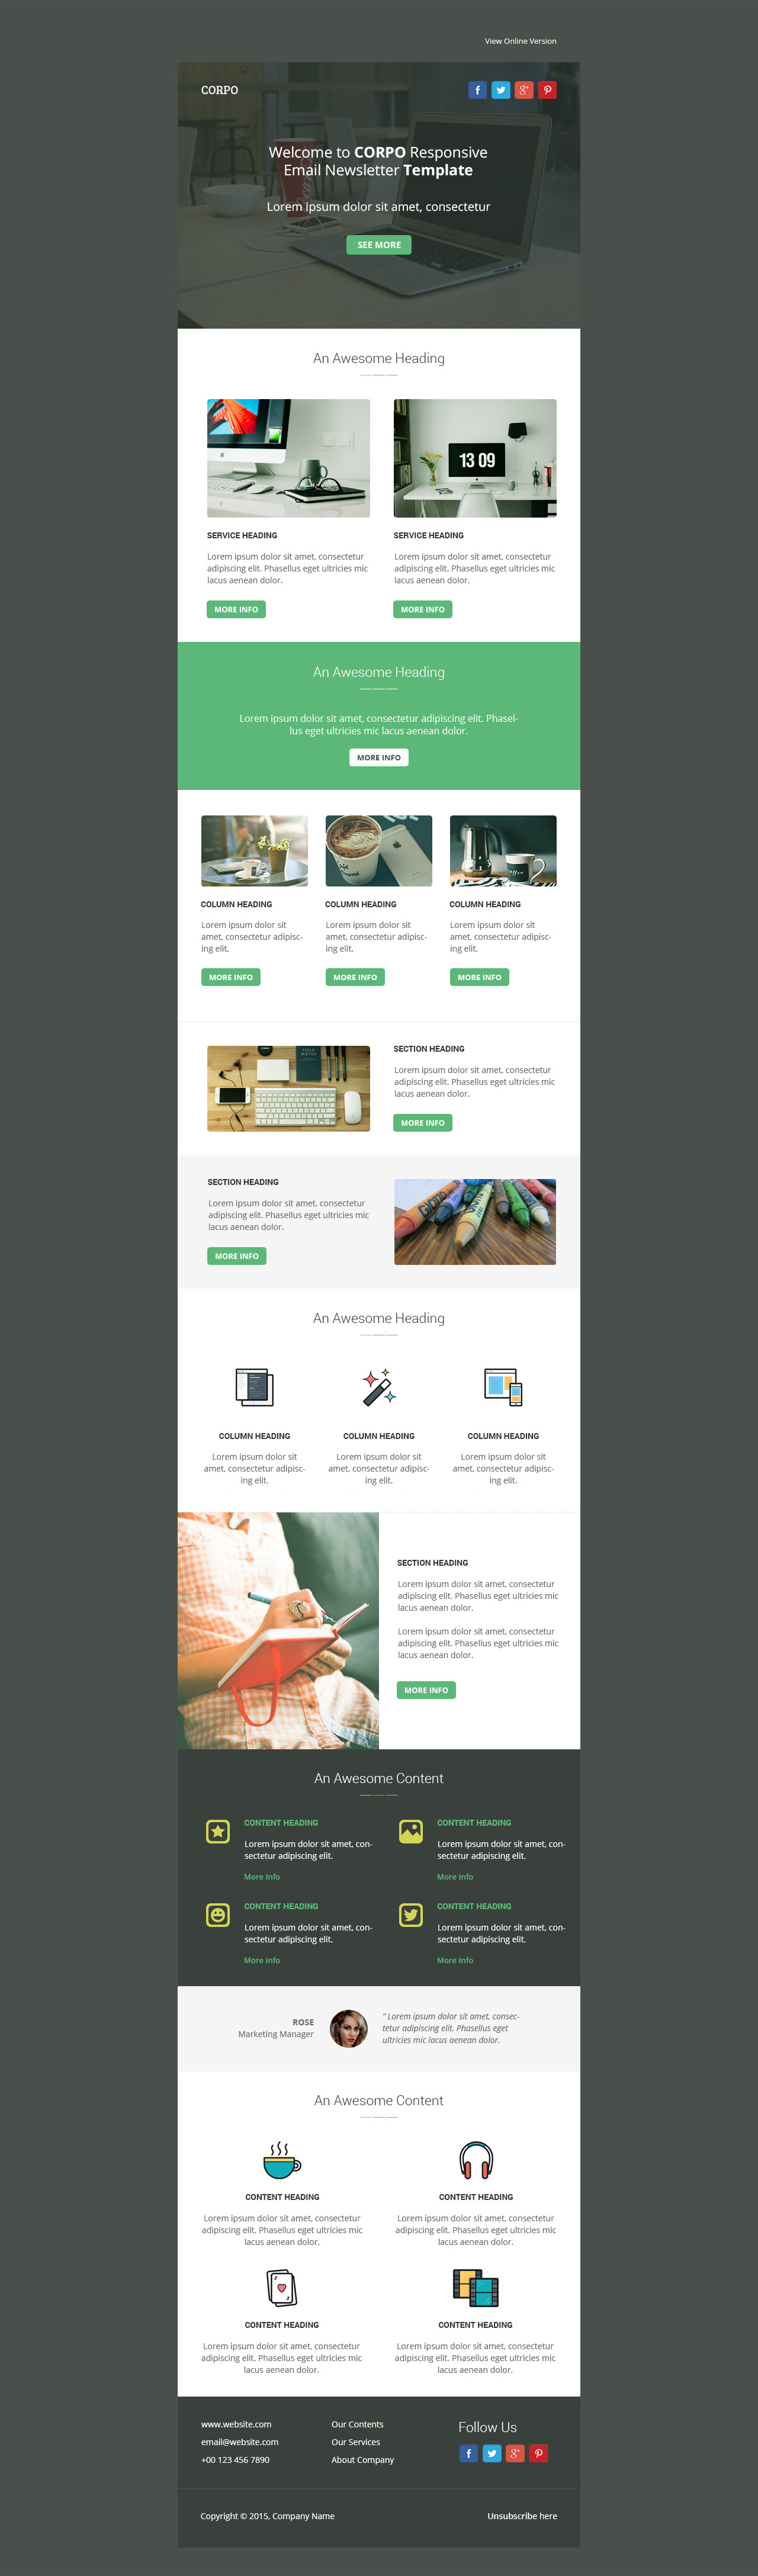 Corpo Responsive Email Template